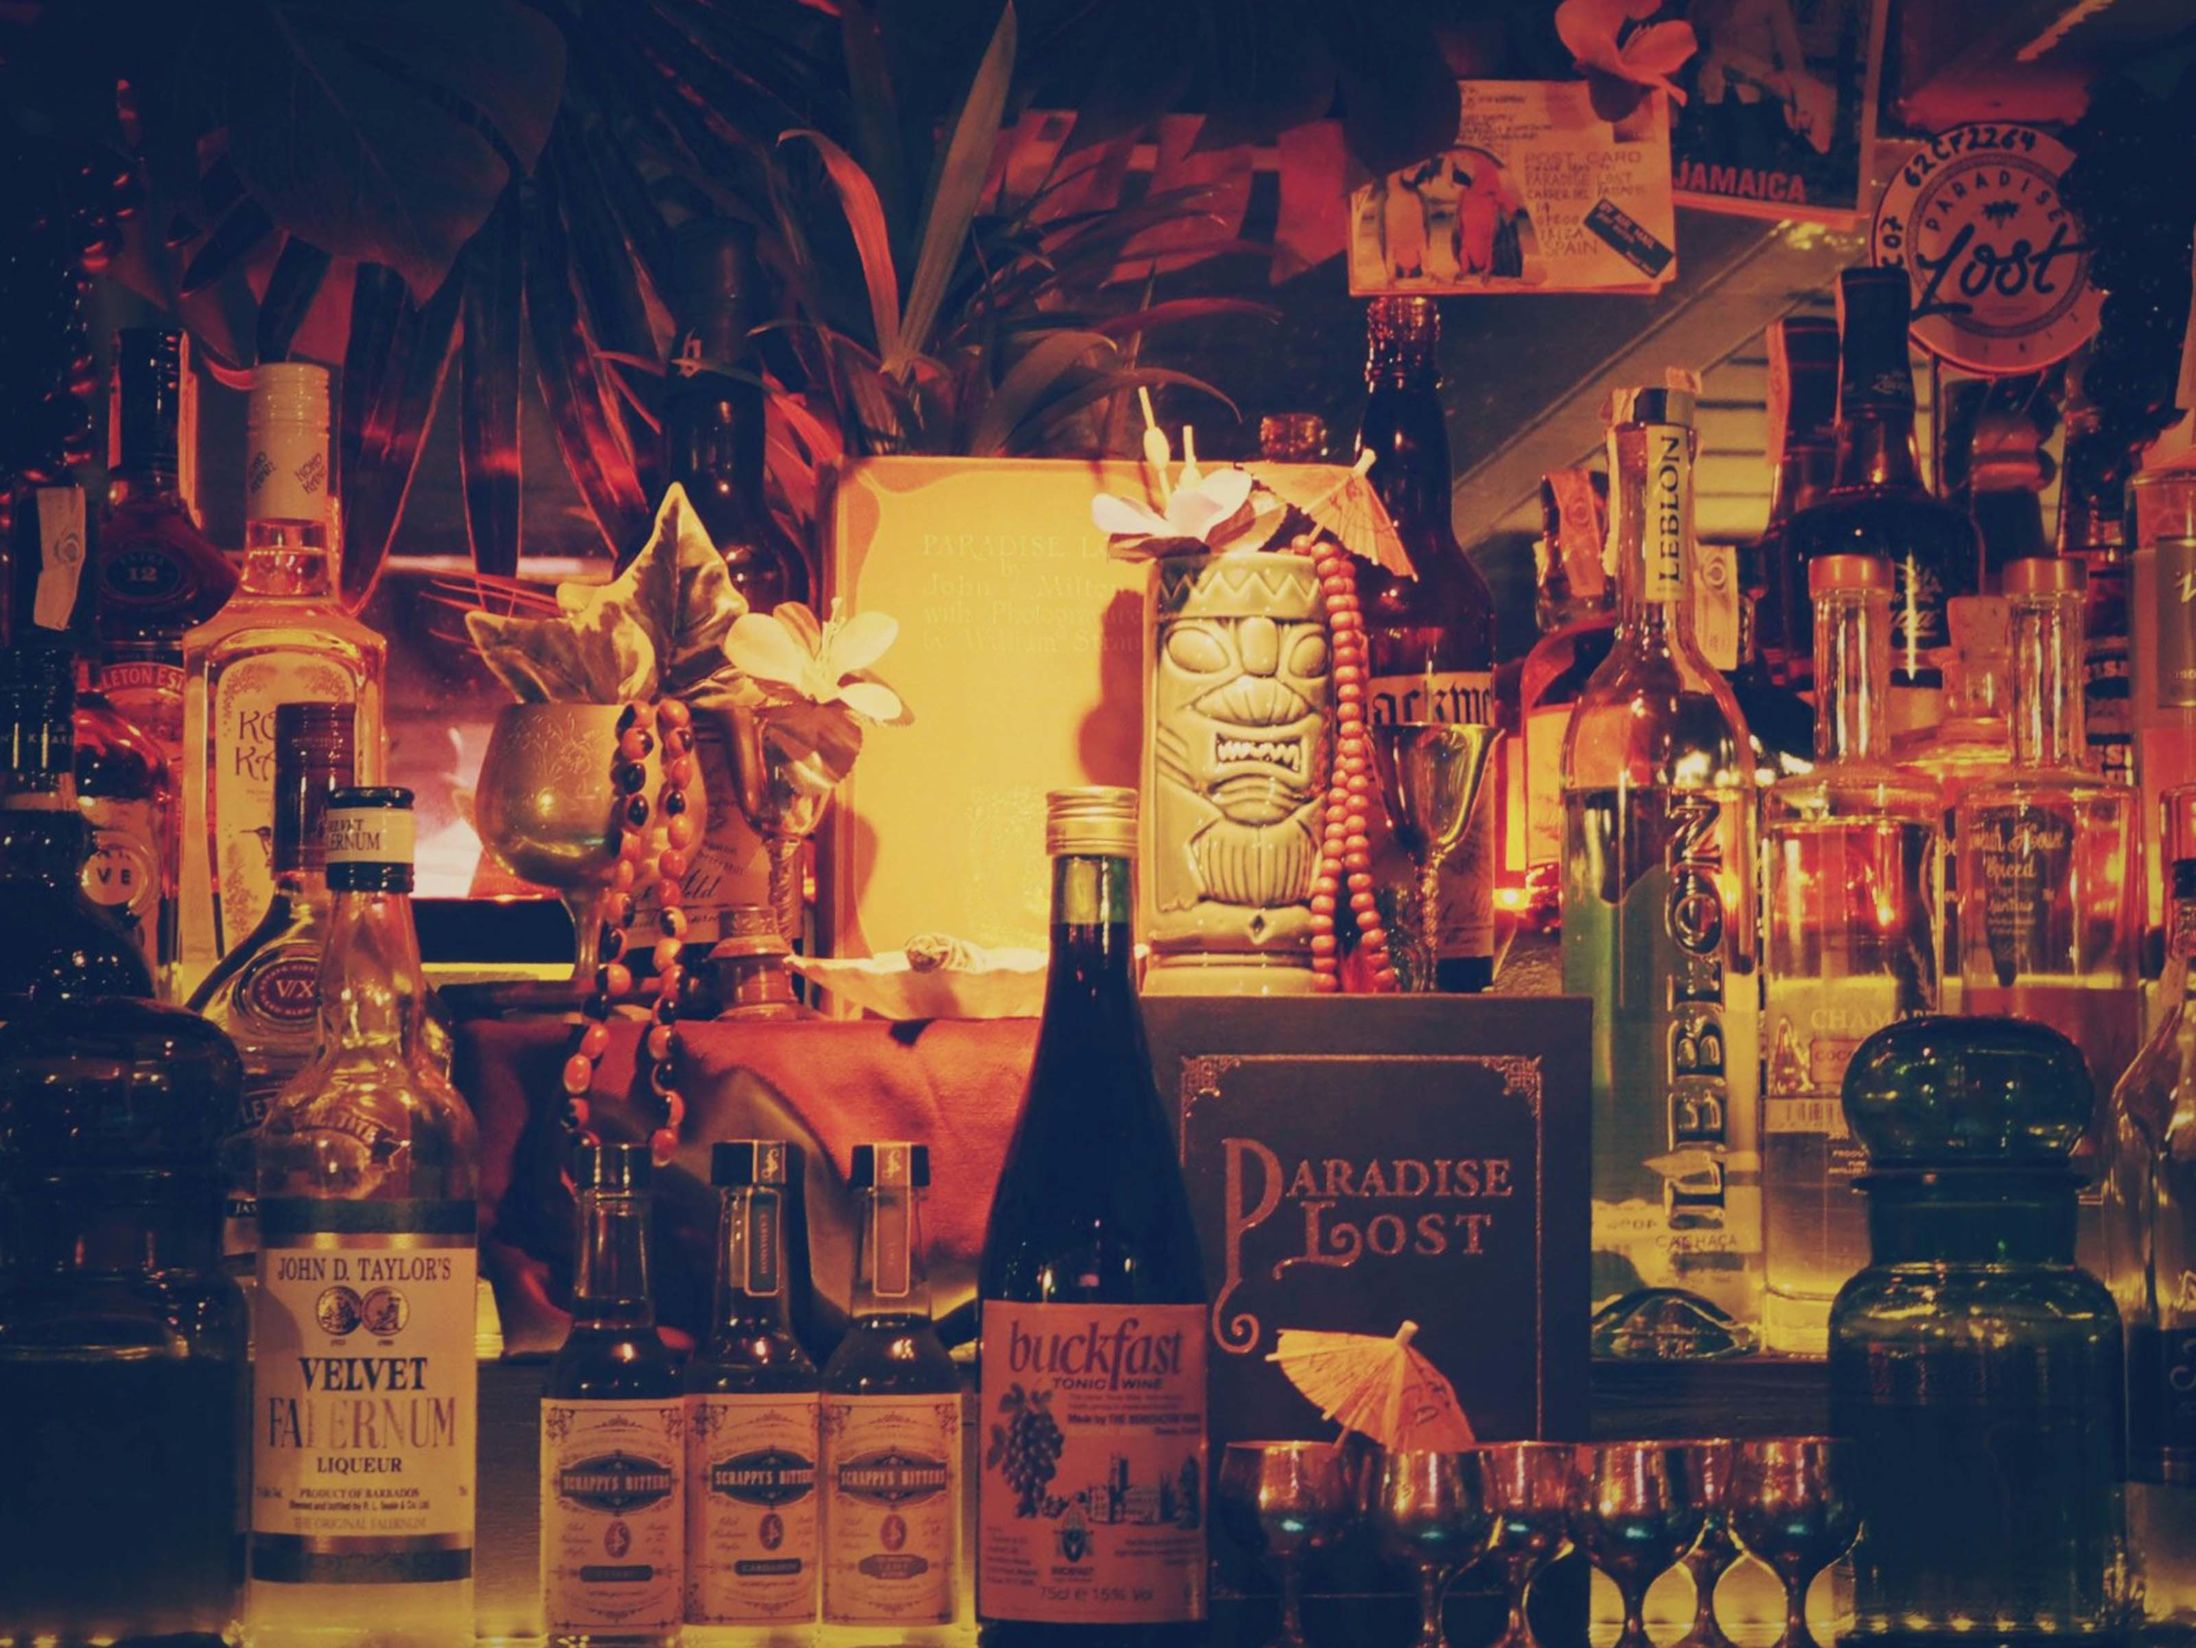 Best Bars in Ibiza - Paradise Lost